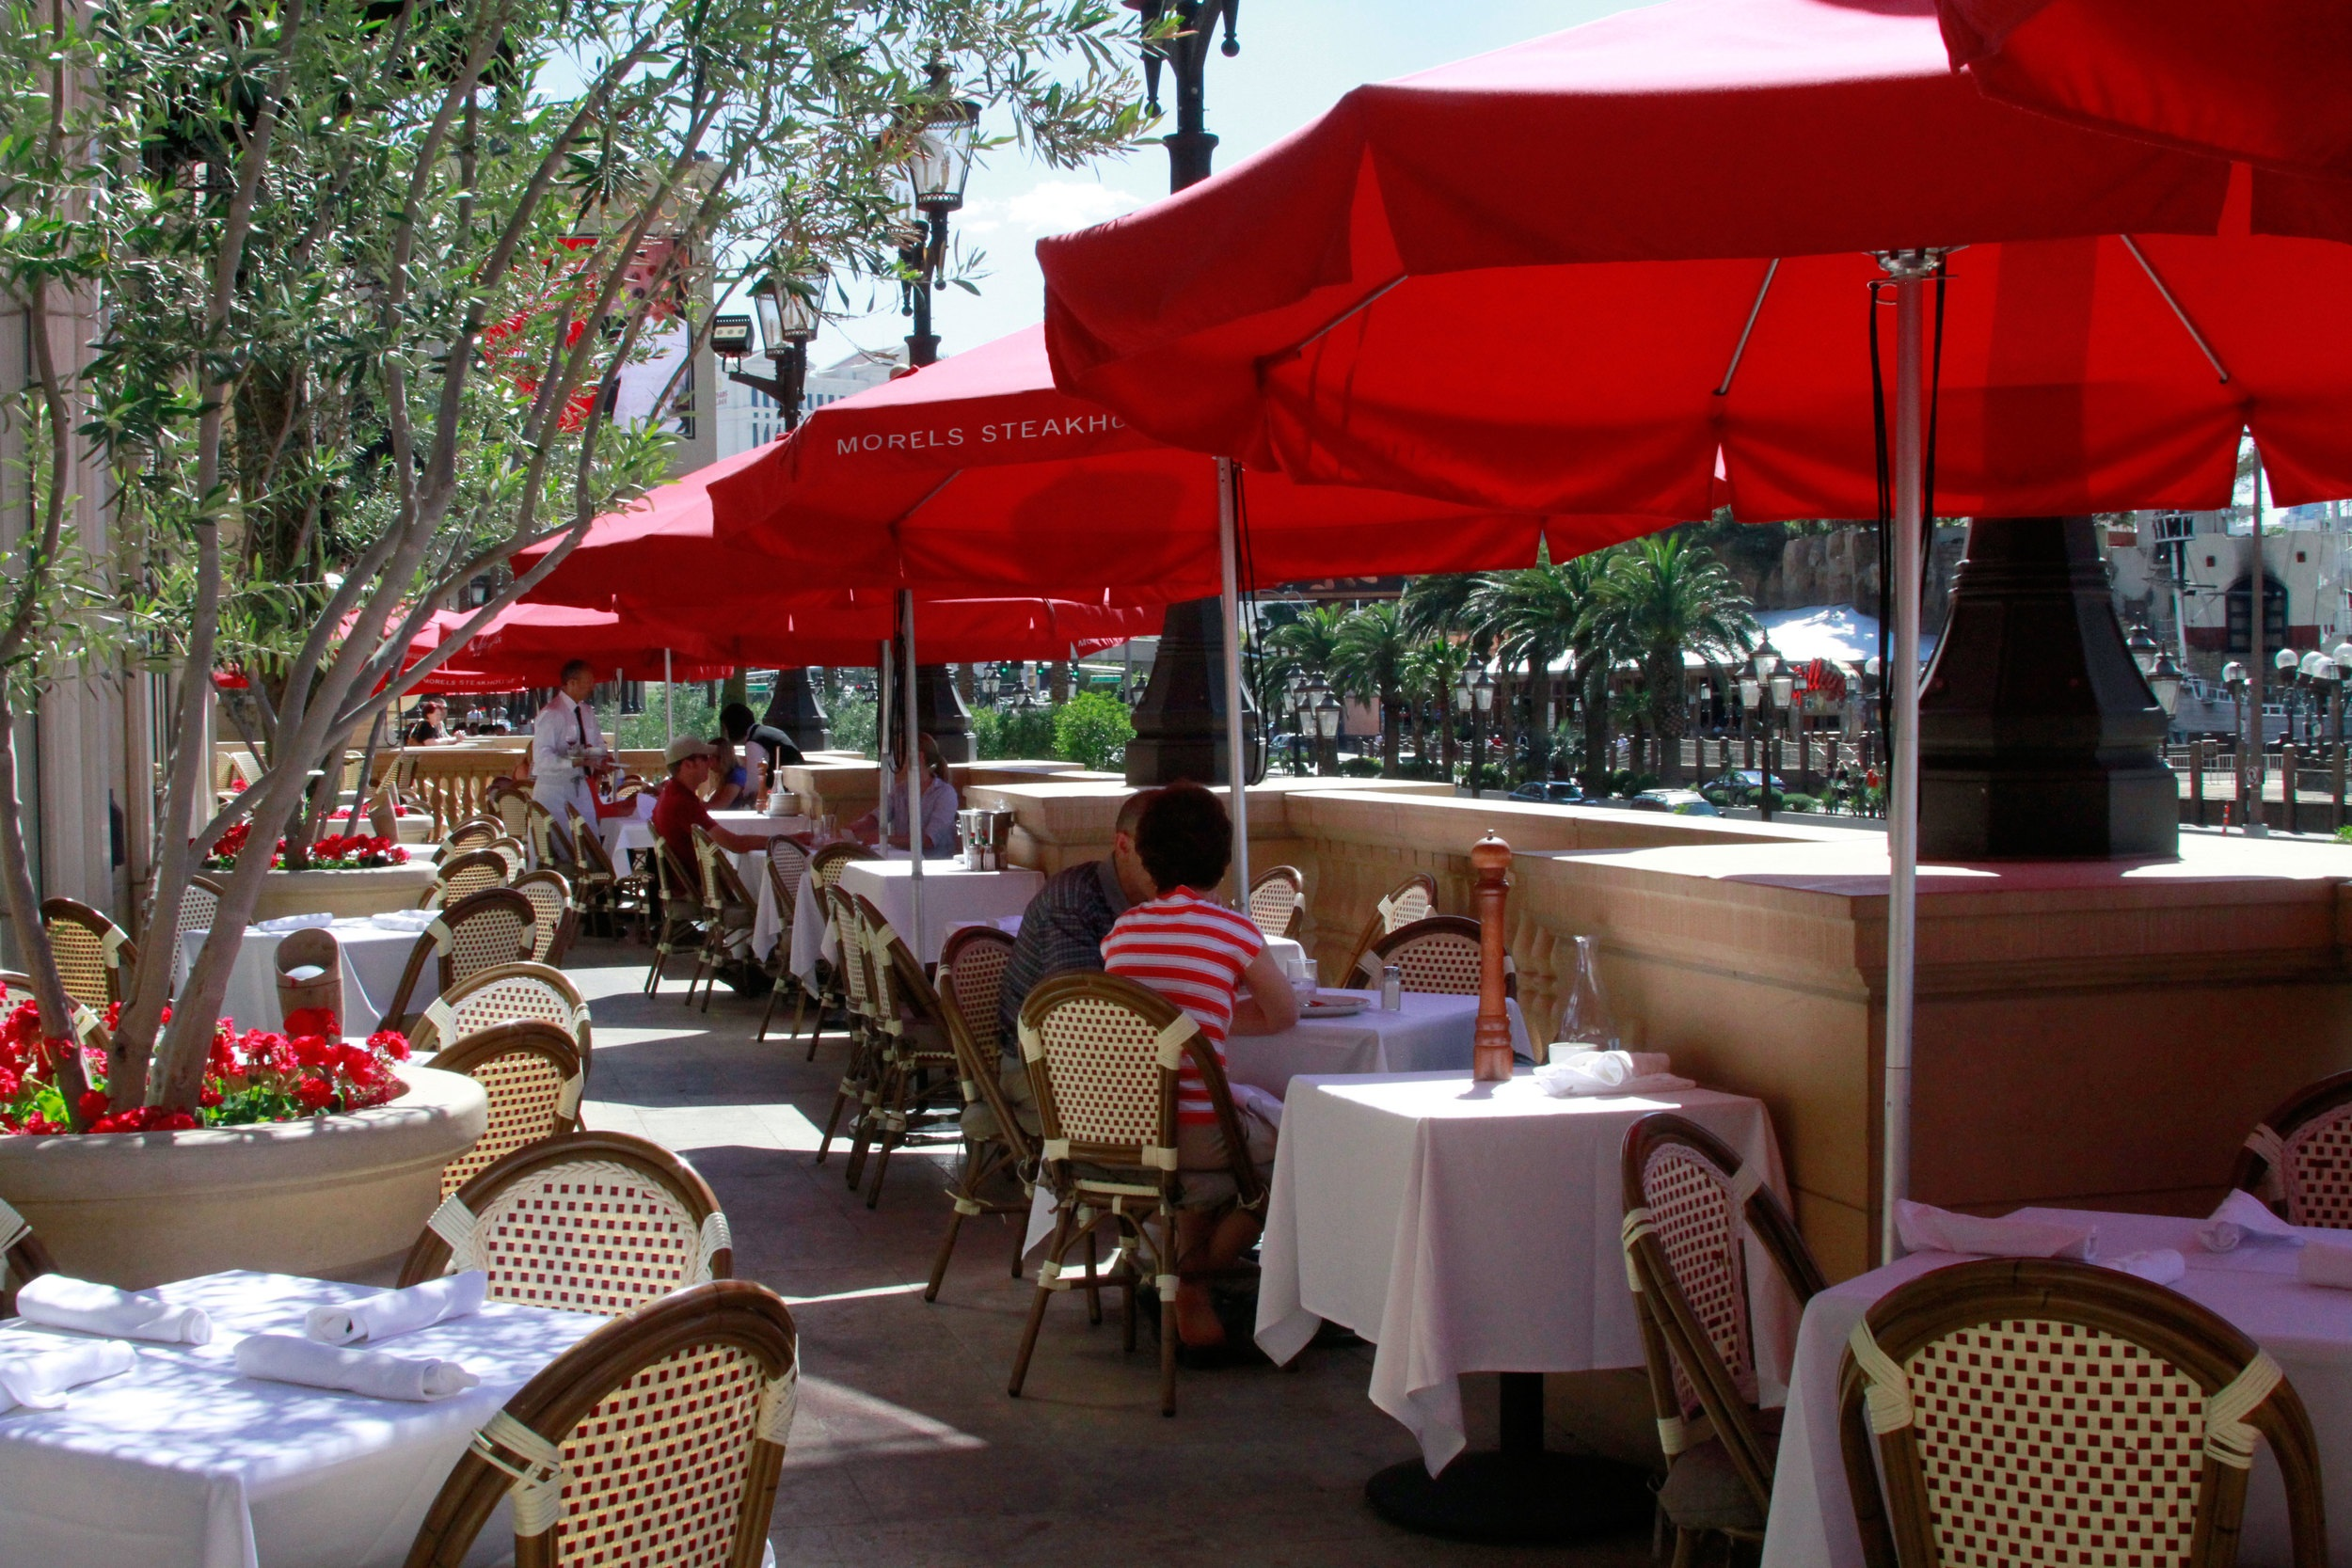 The patio on The Strip